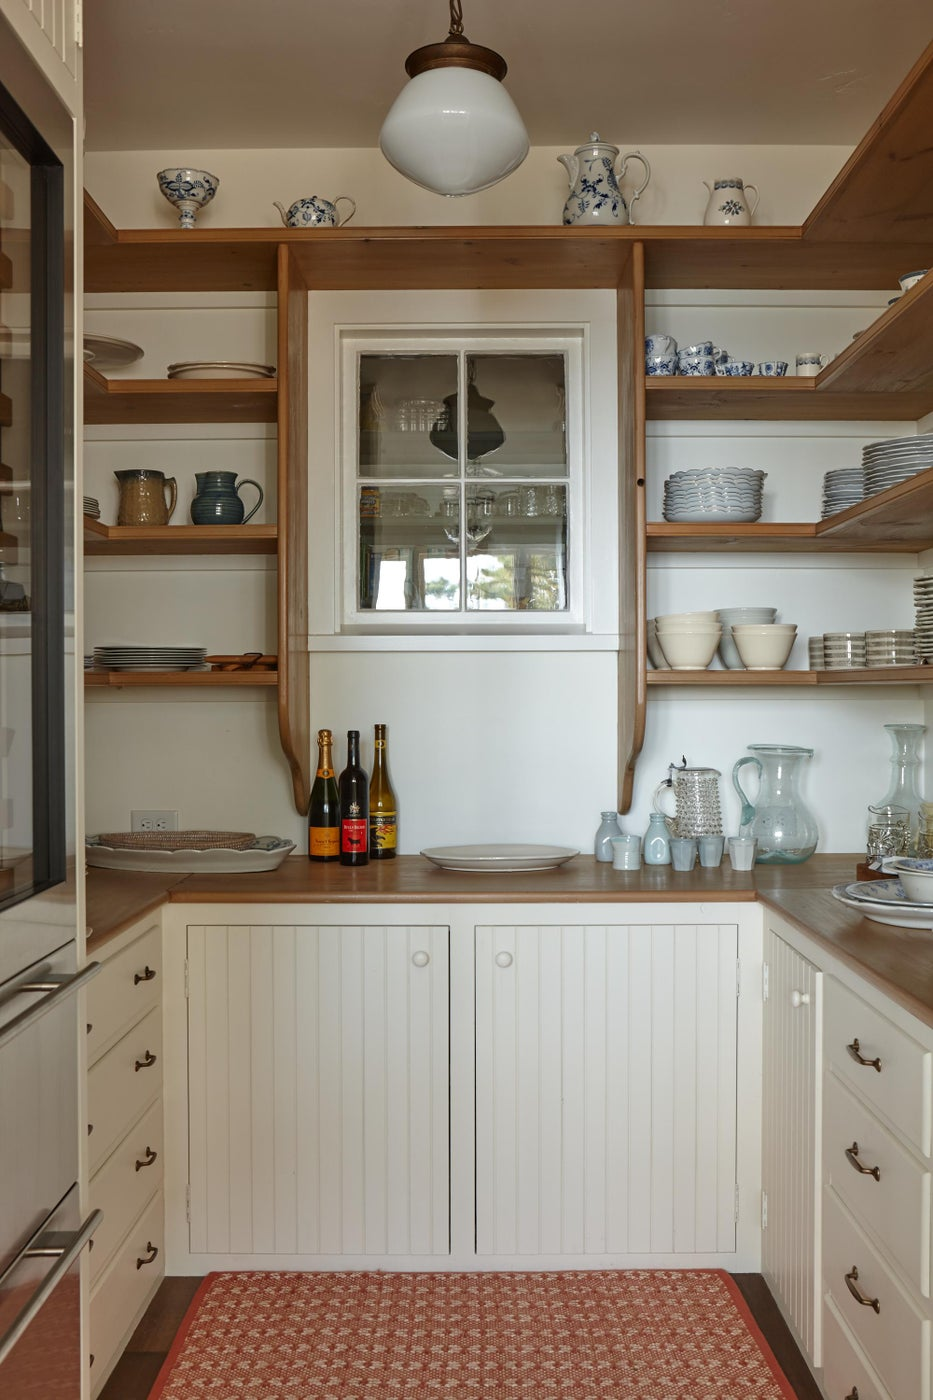 Pantry in kitchen with white cabinetry.